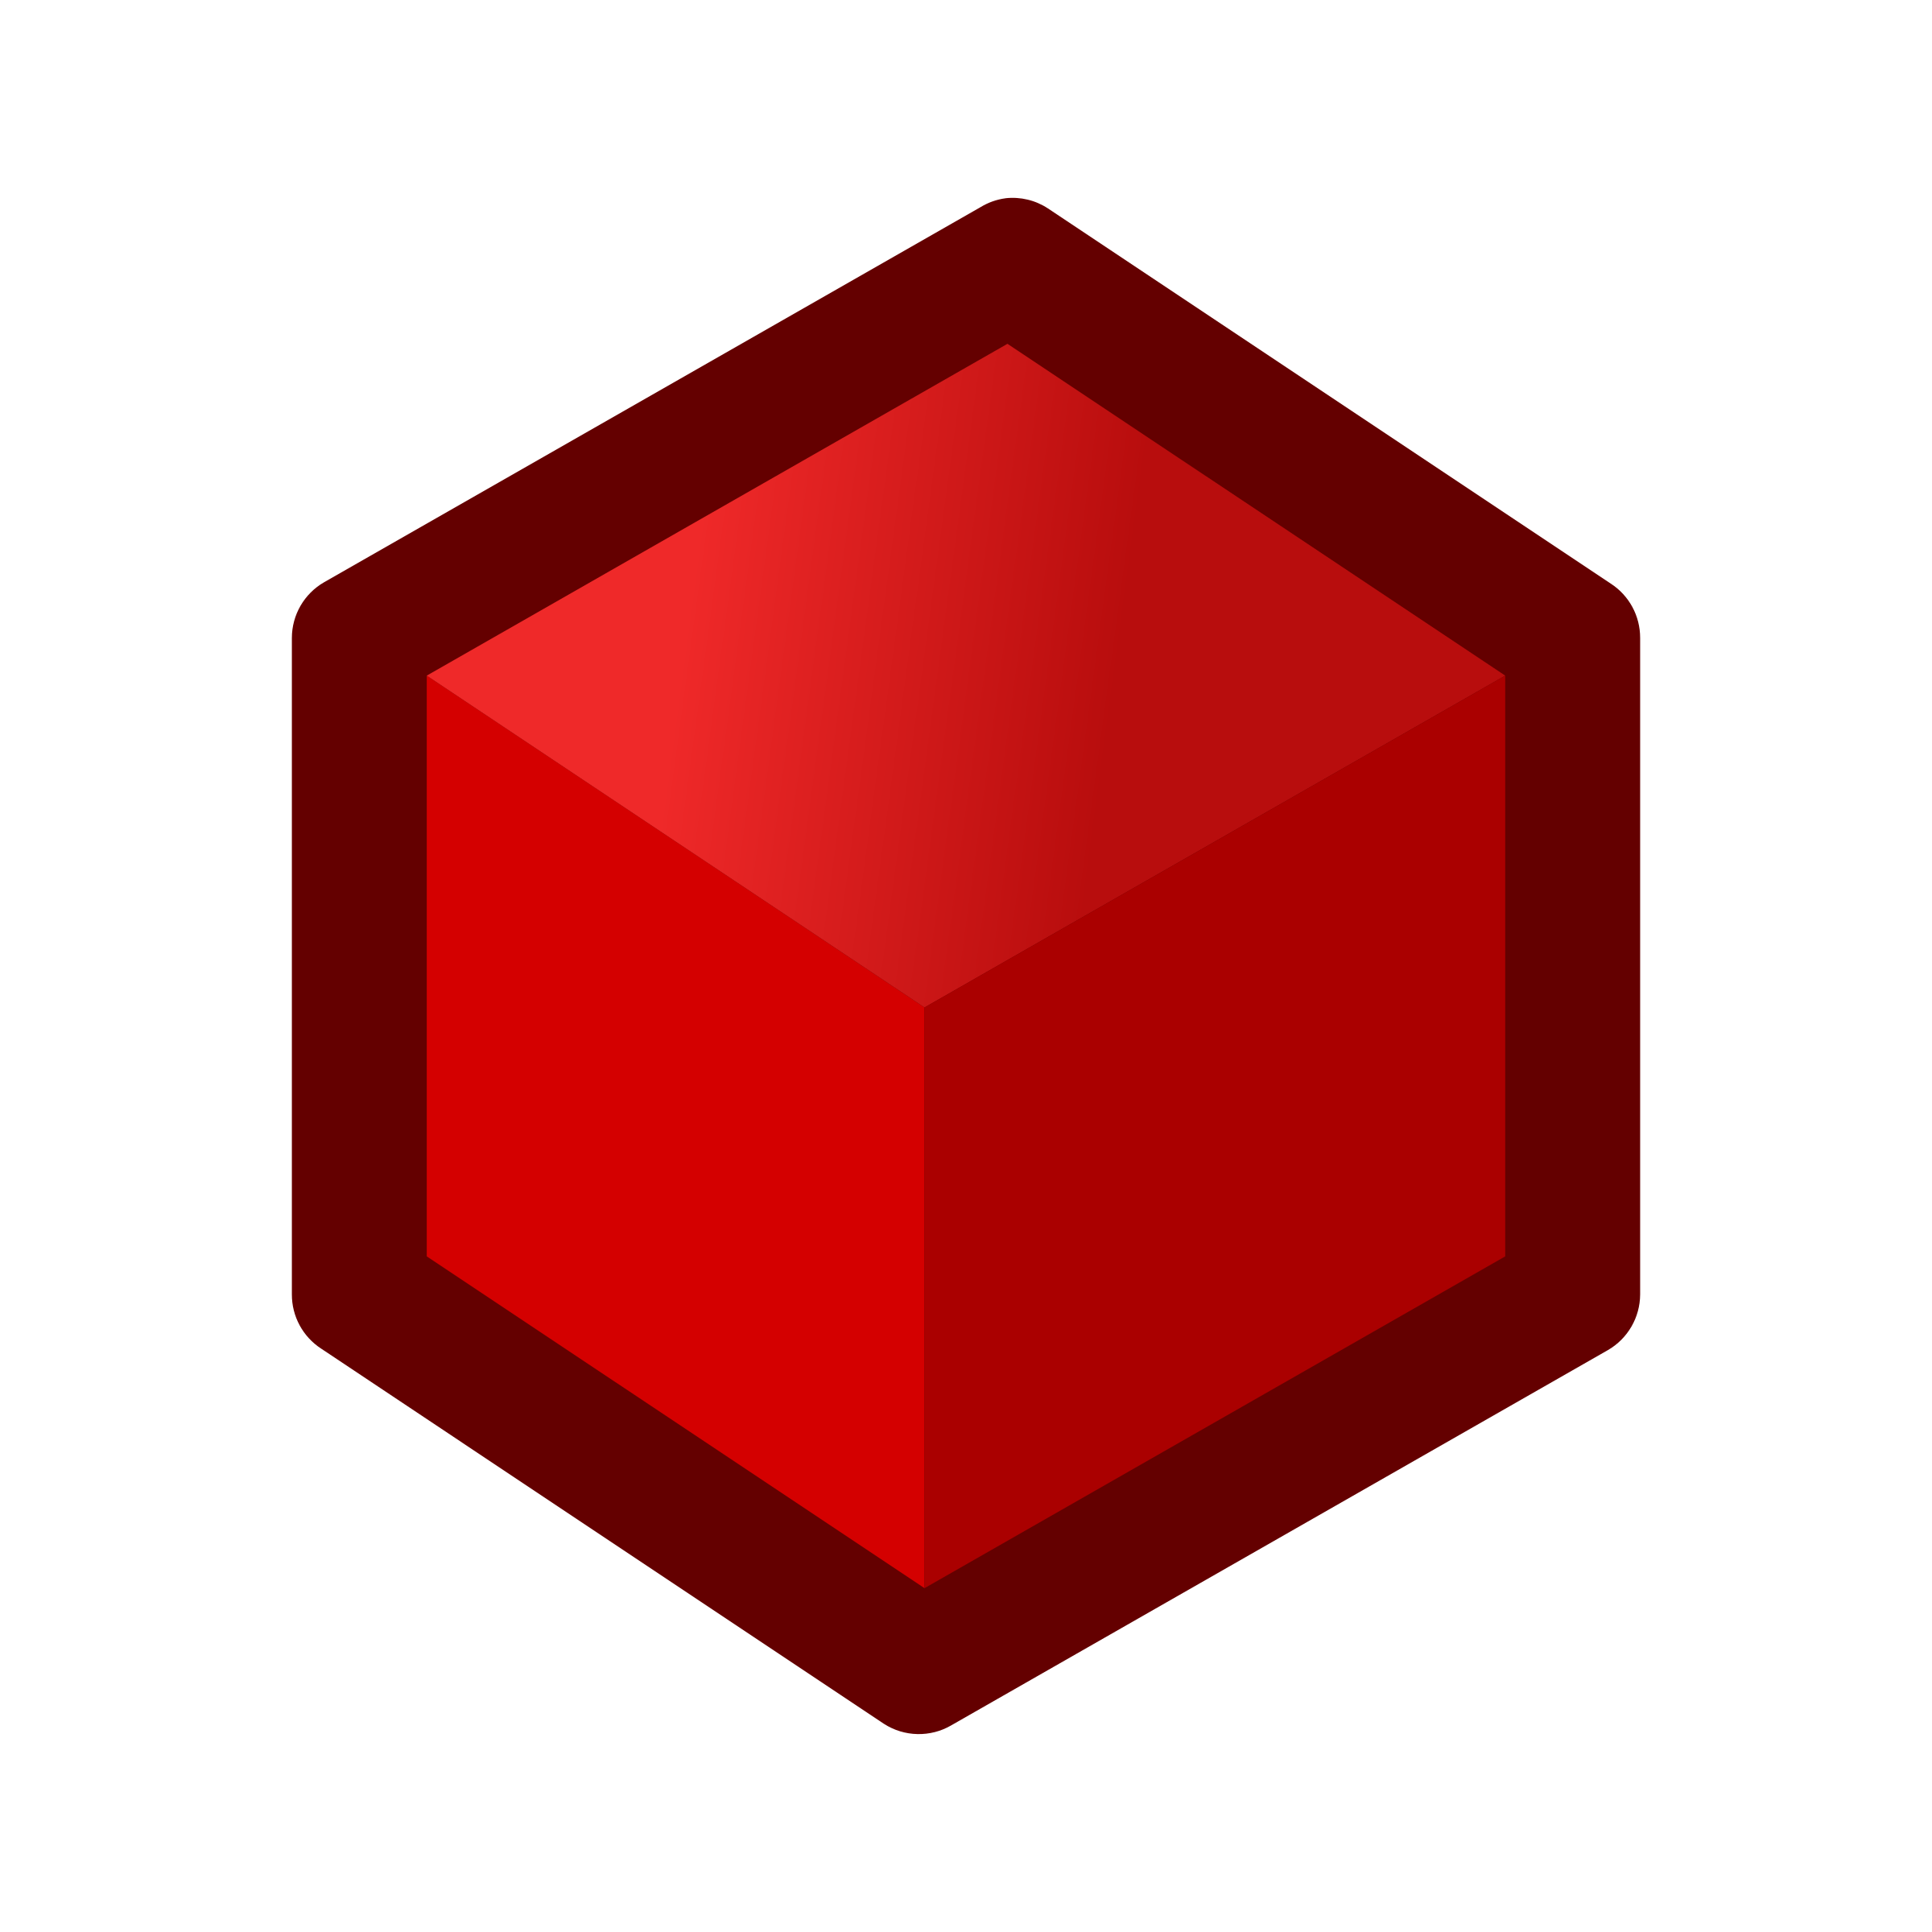 Cube clipart red Cube cube icon icon red